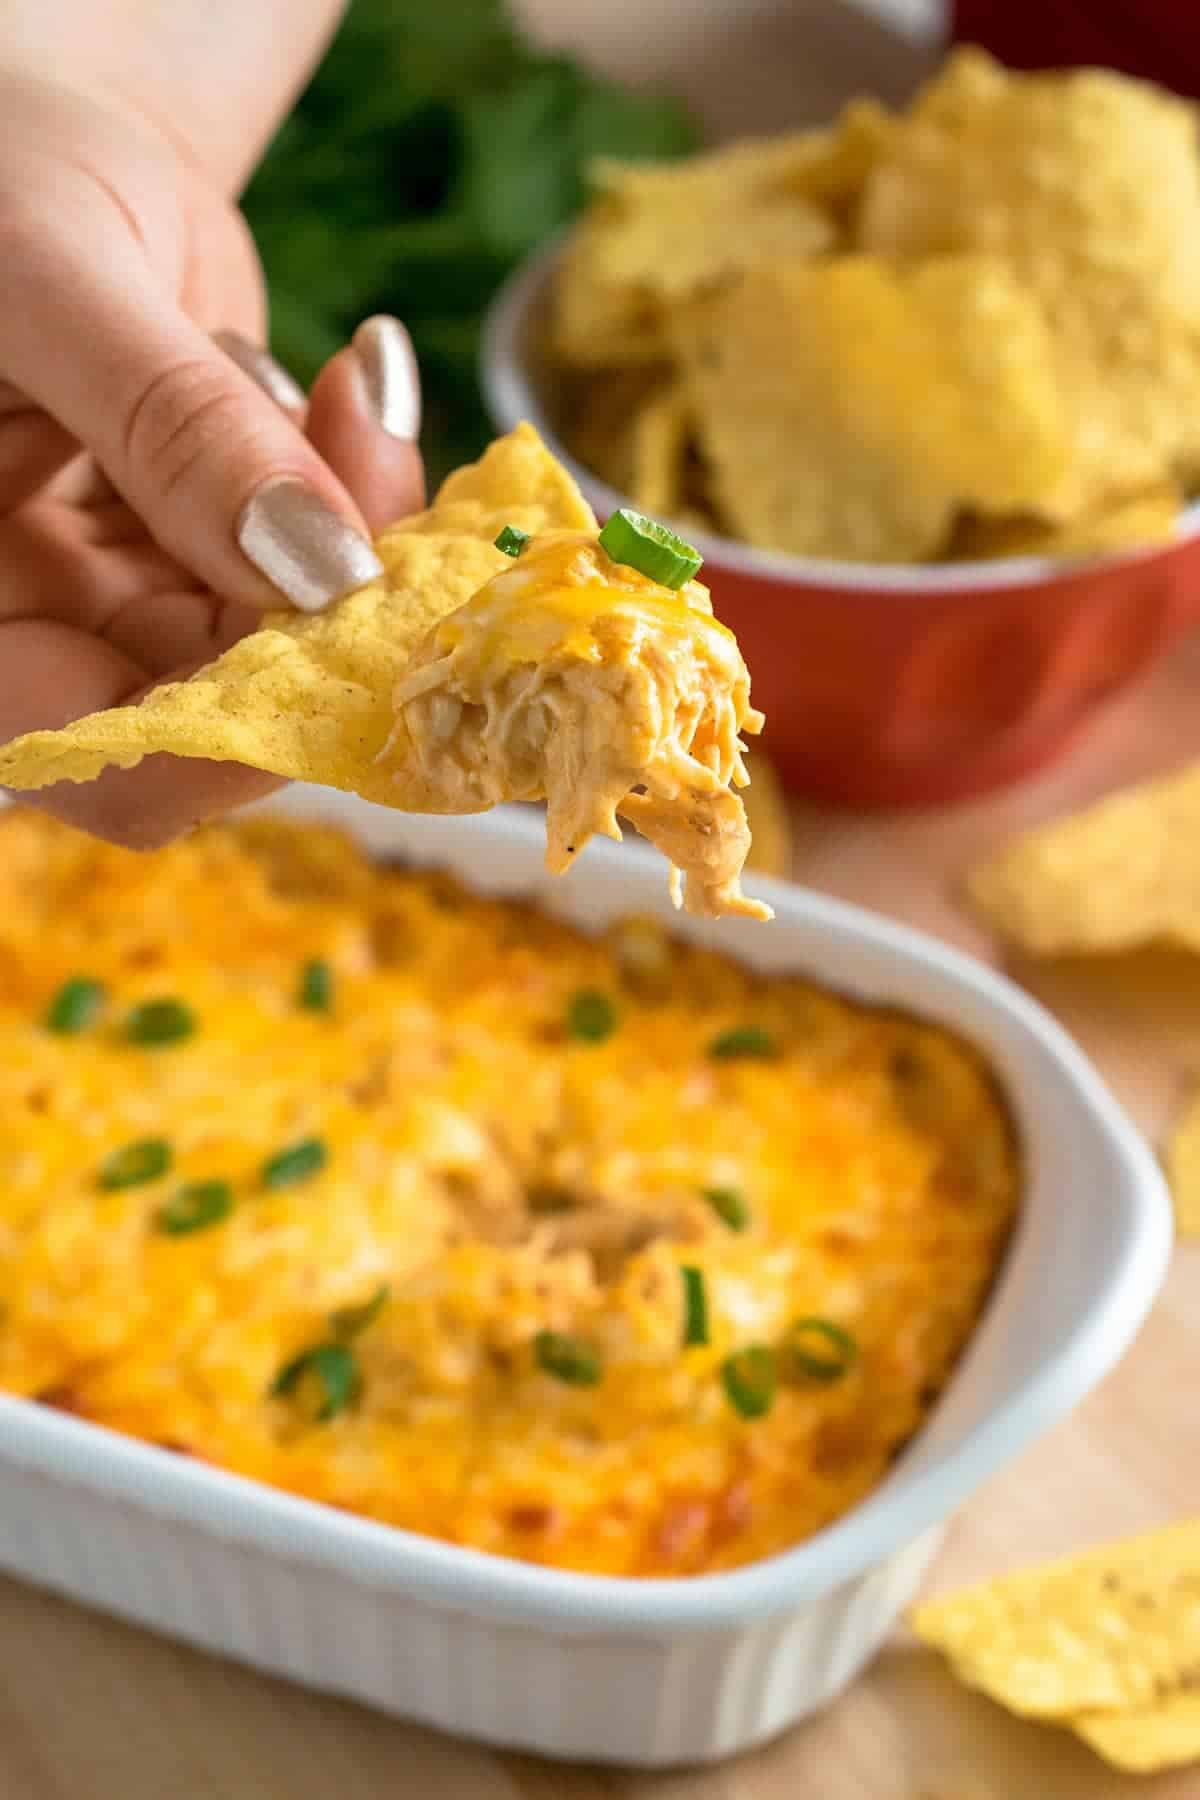 Baked buffalo chicken dip served on tortilla chip, topped with melted cheese and garnished with chives.